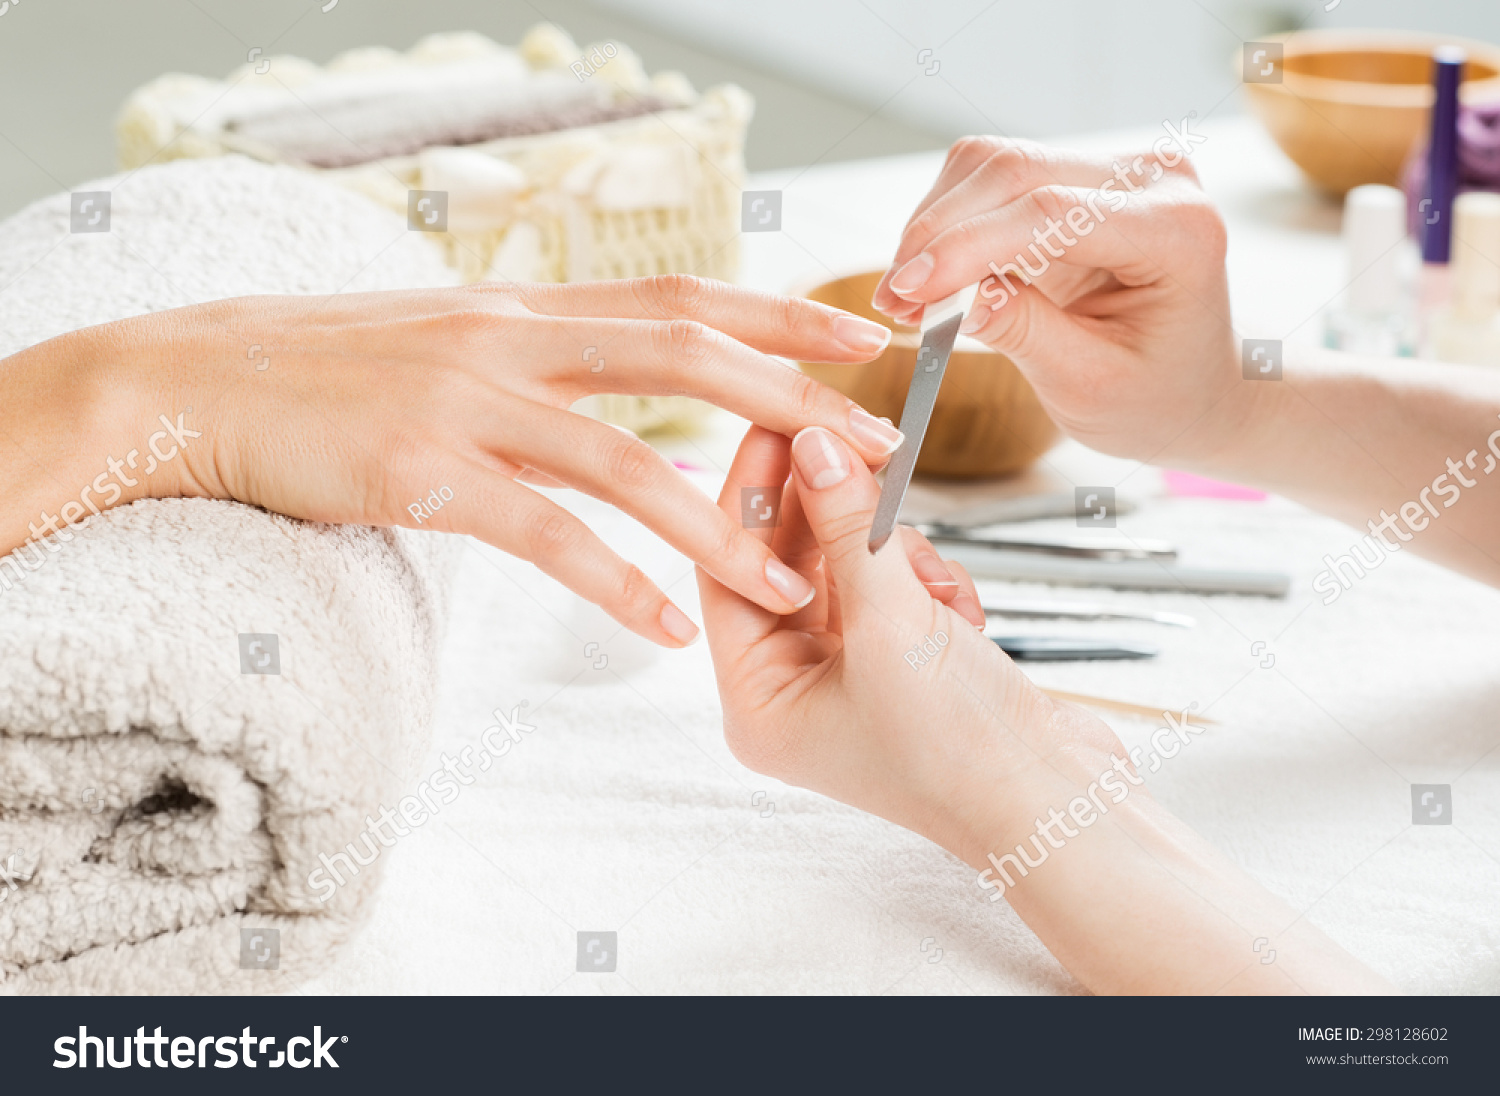 https://www.mcubestudio.com.au/wp-content/uploads/2020/02/stock-photo-closeup-shot-of-a-woman-in-a-nail-salon-receiving-a-manicure-by-a-beautician-with-nail-file-woman-298128602.jpg